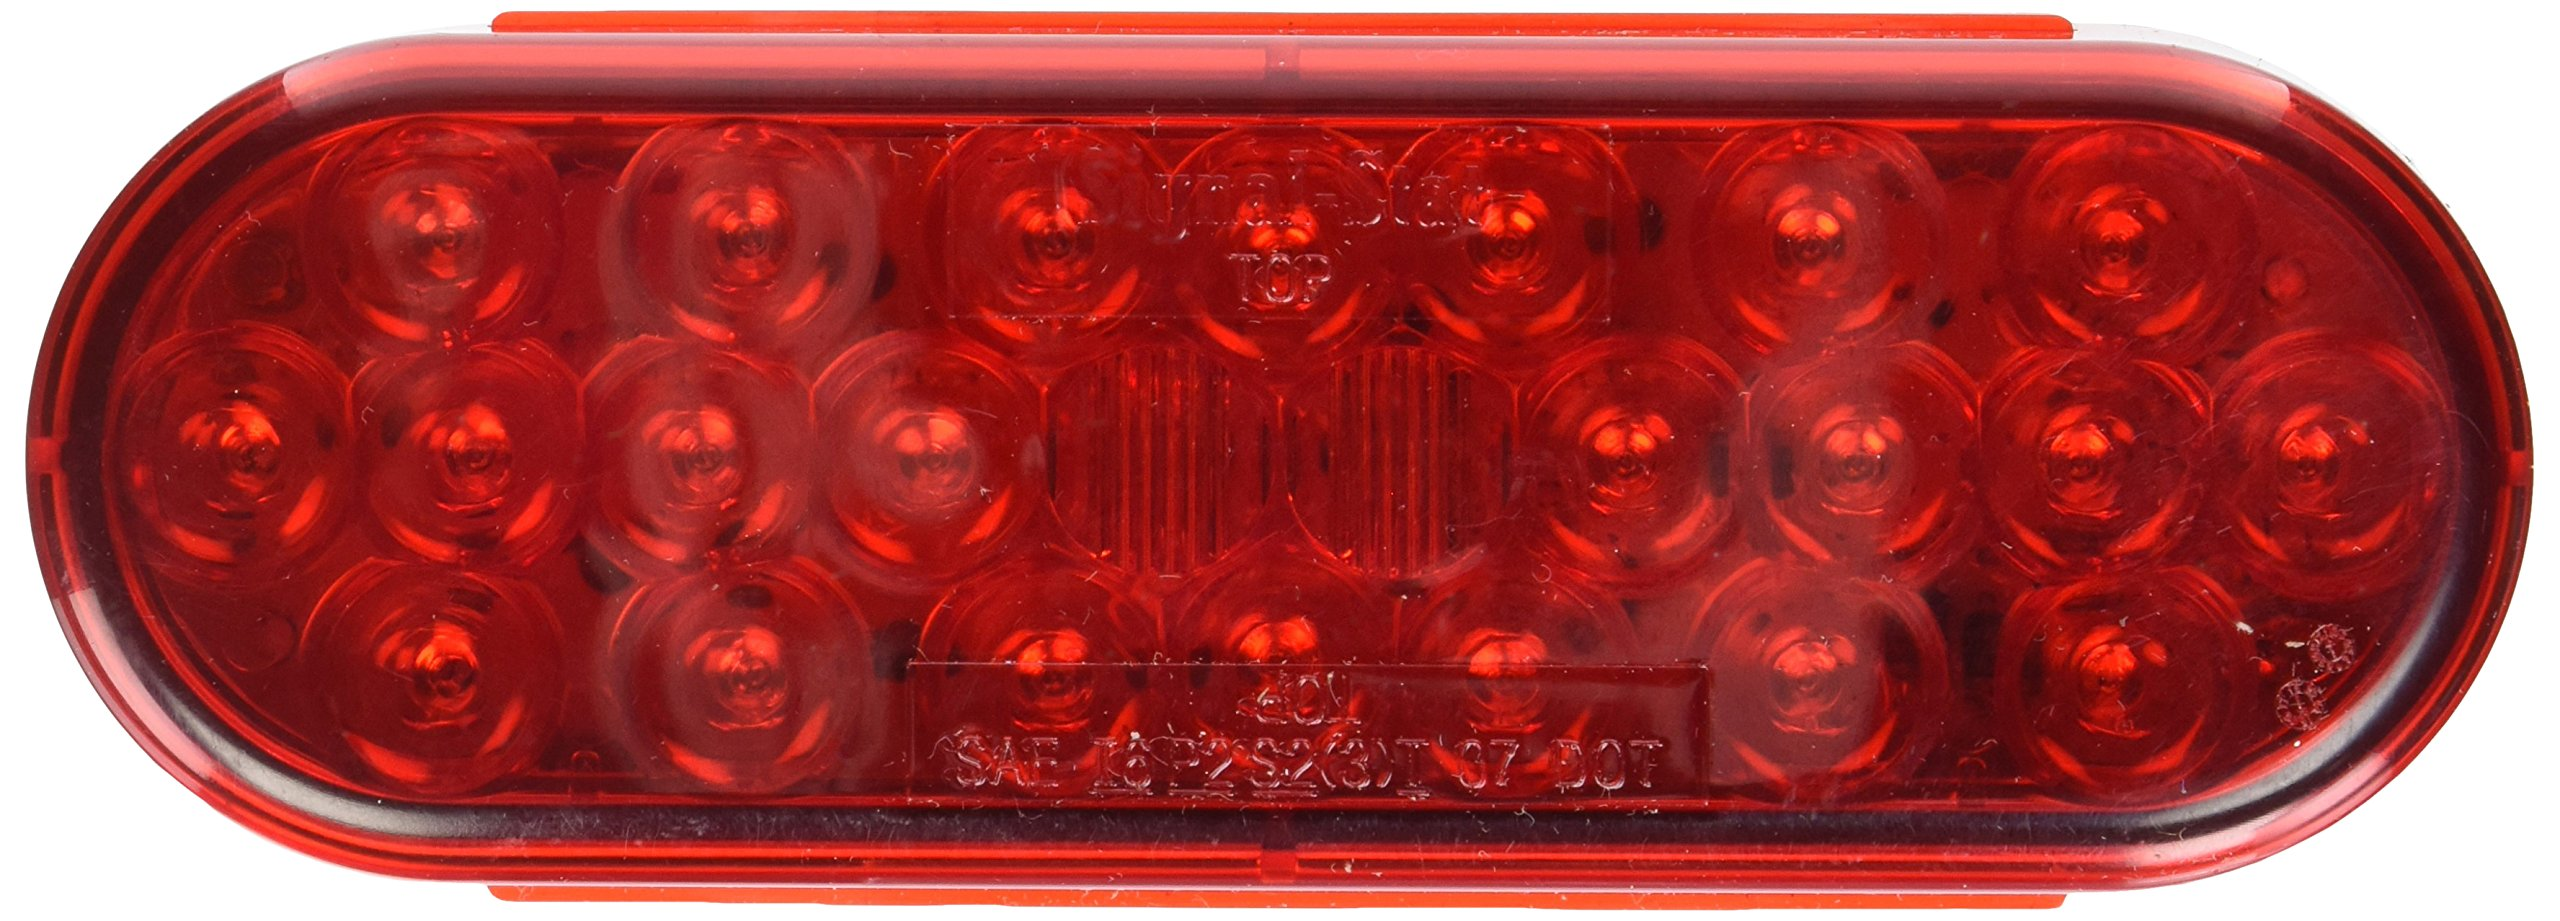 Truck-Lite (6050) Stop/Turn/Tail Lamp by Truck-Lite